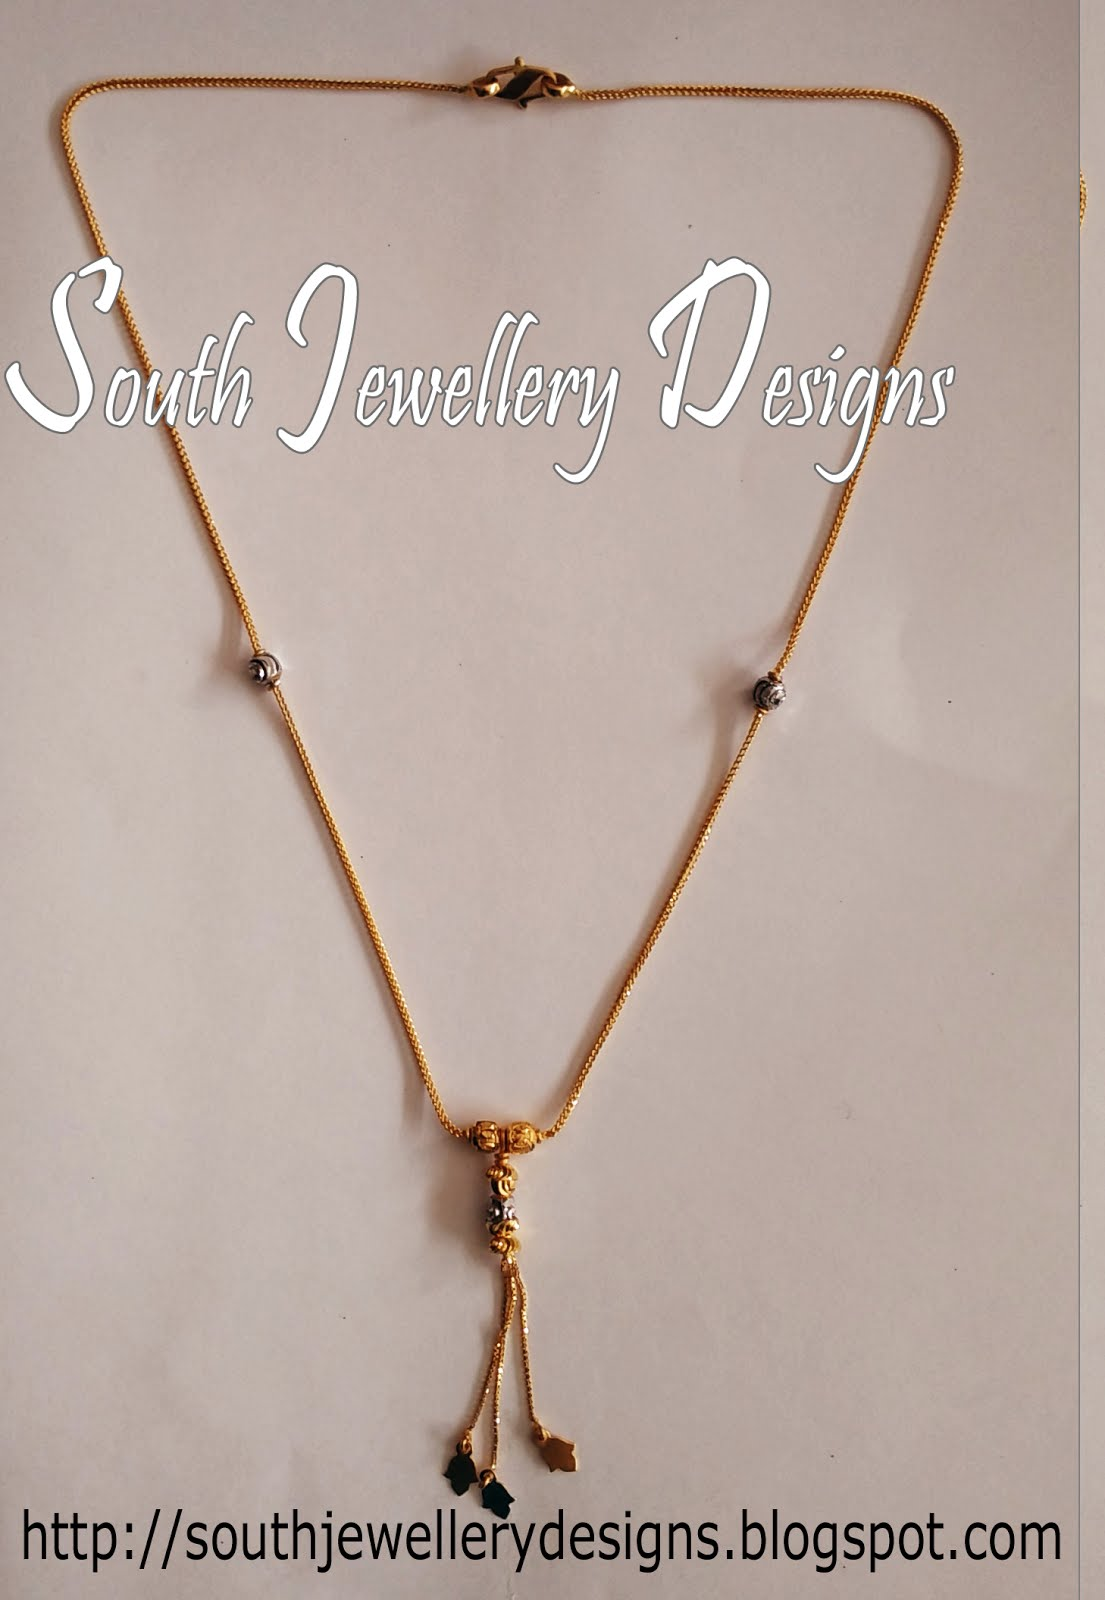 South Jewellery Designs Collections of Necklaces